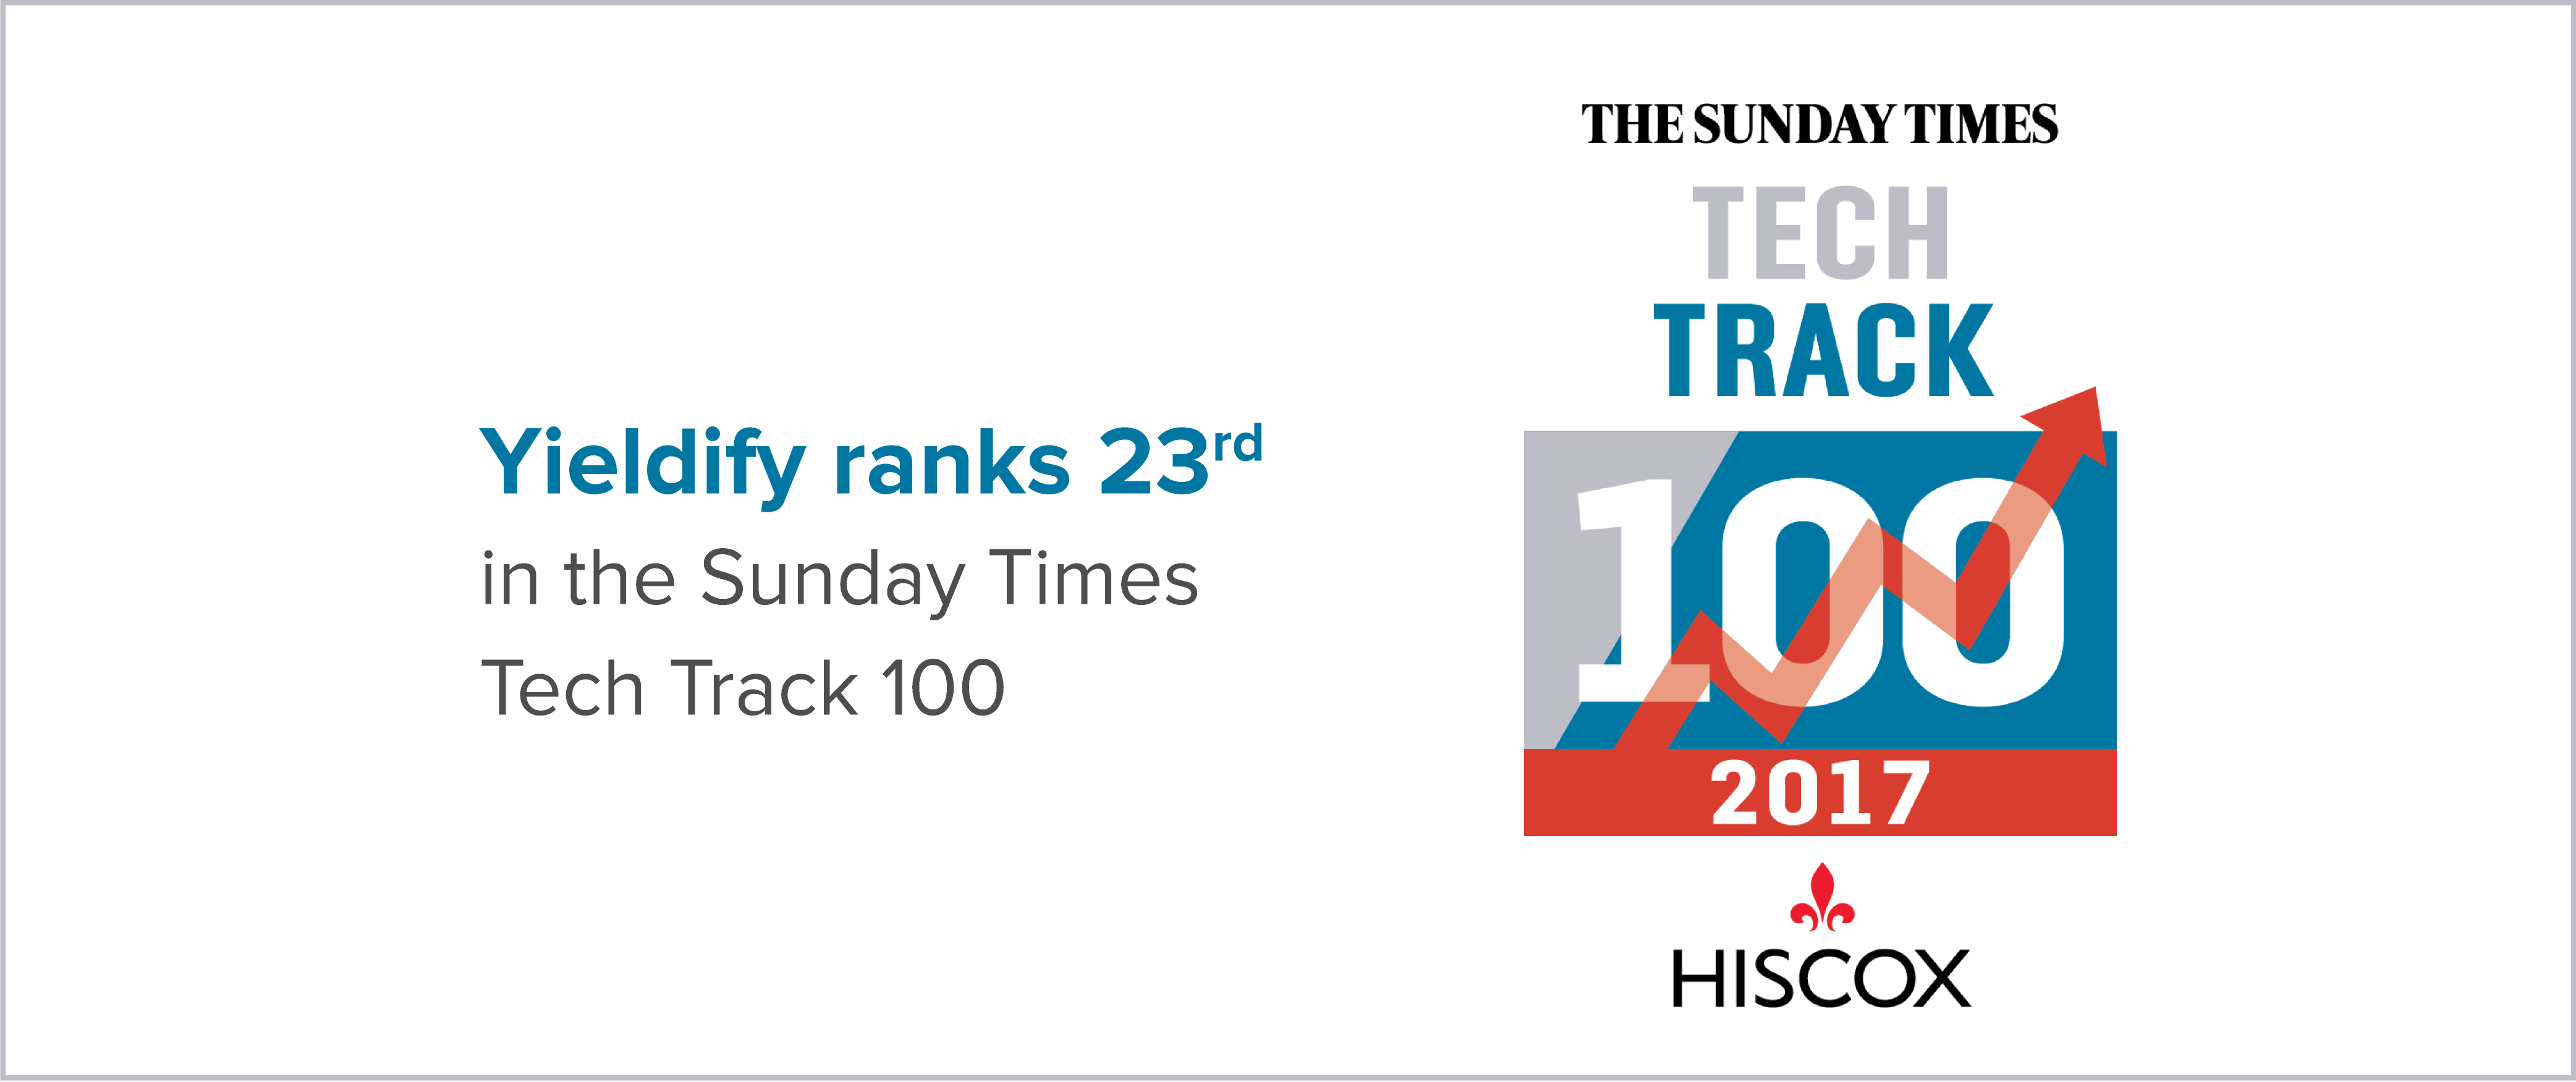 Sunday Times Tech Track 100 listing 2017